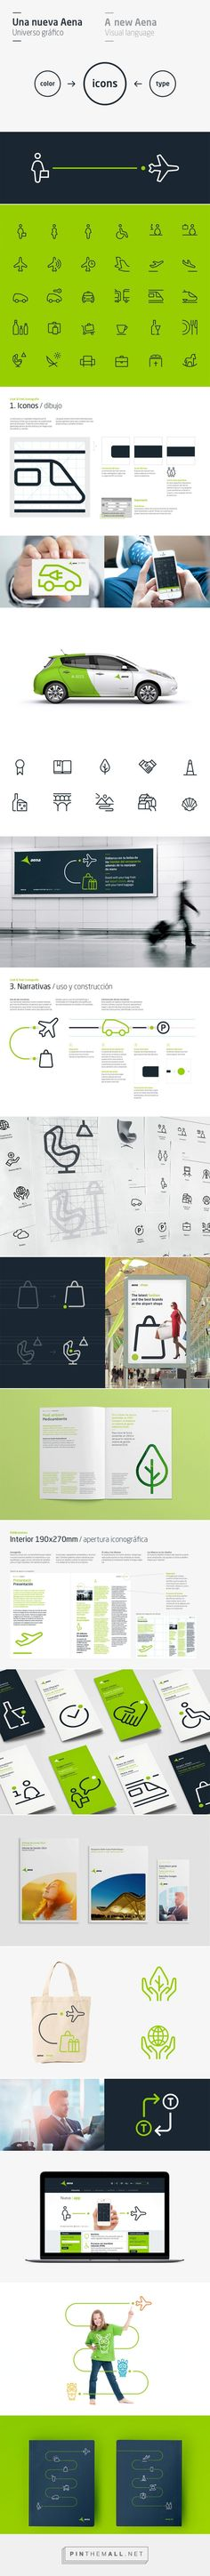 Aena is the world's number one airport operator in terms of passenger traffic | #branding #design